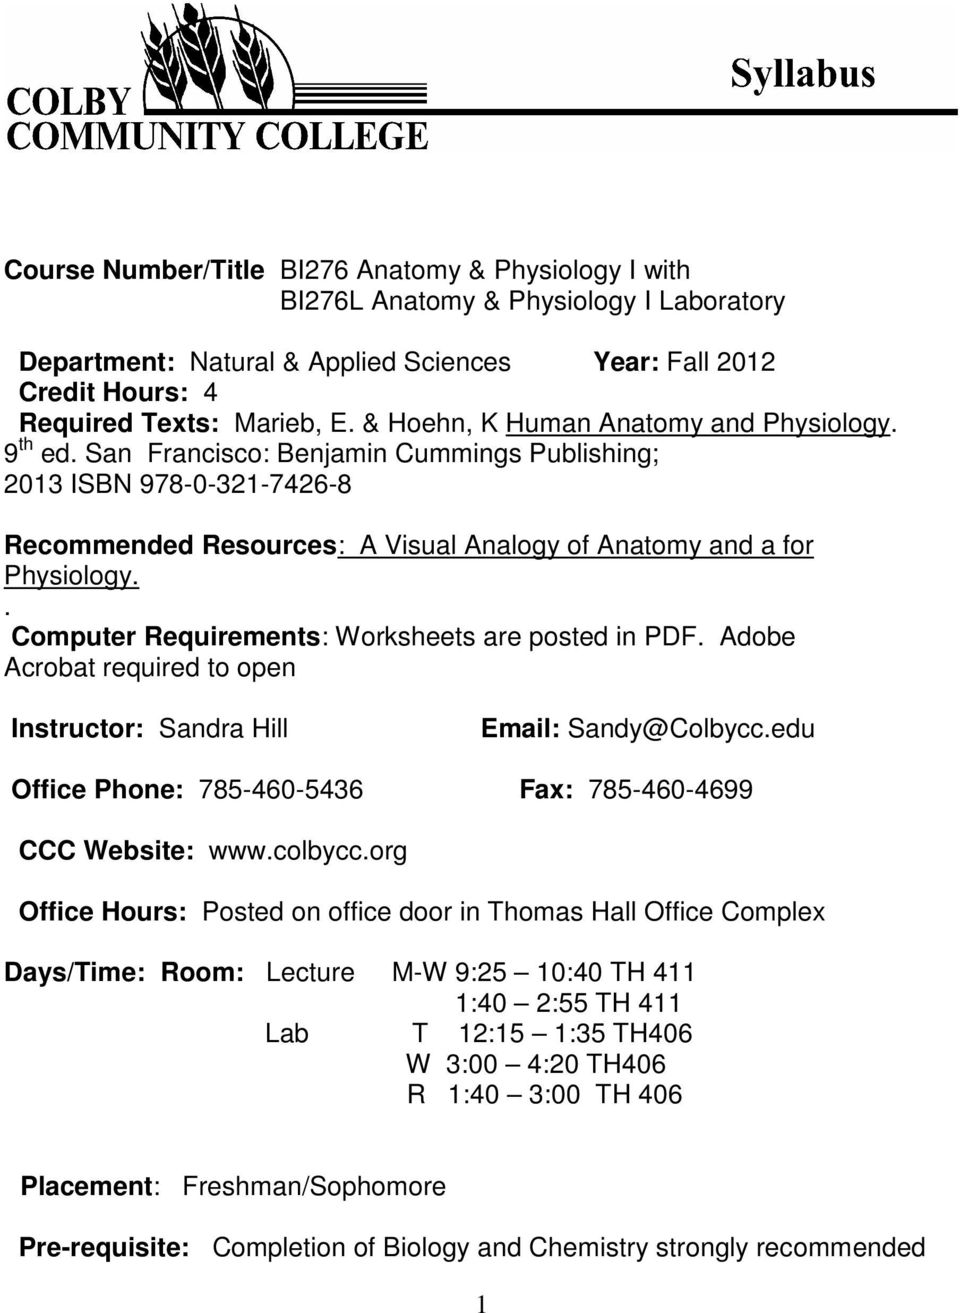 . Computer Requirements: are posted in PDF. Adobe Acrobat required to open Instructor: Sandra Hill Email: Sandy@Colbycc.edu Office Phone: 785-460-5436 Fax: 785-460-4699 CCC Website: www.colbycc.